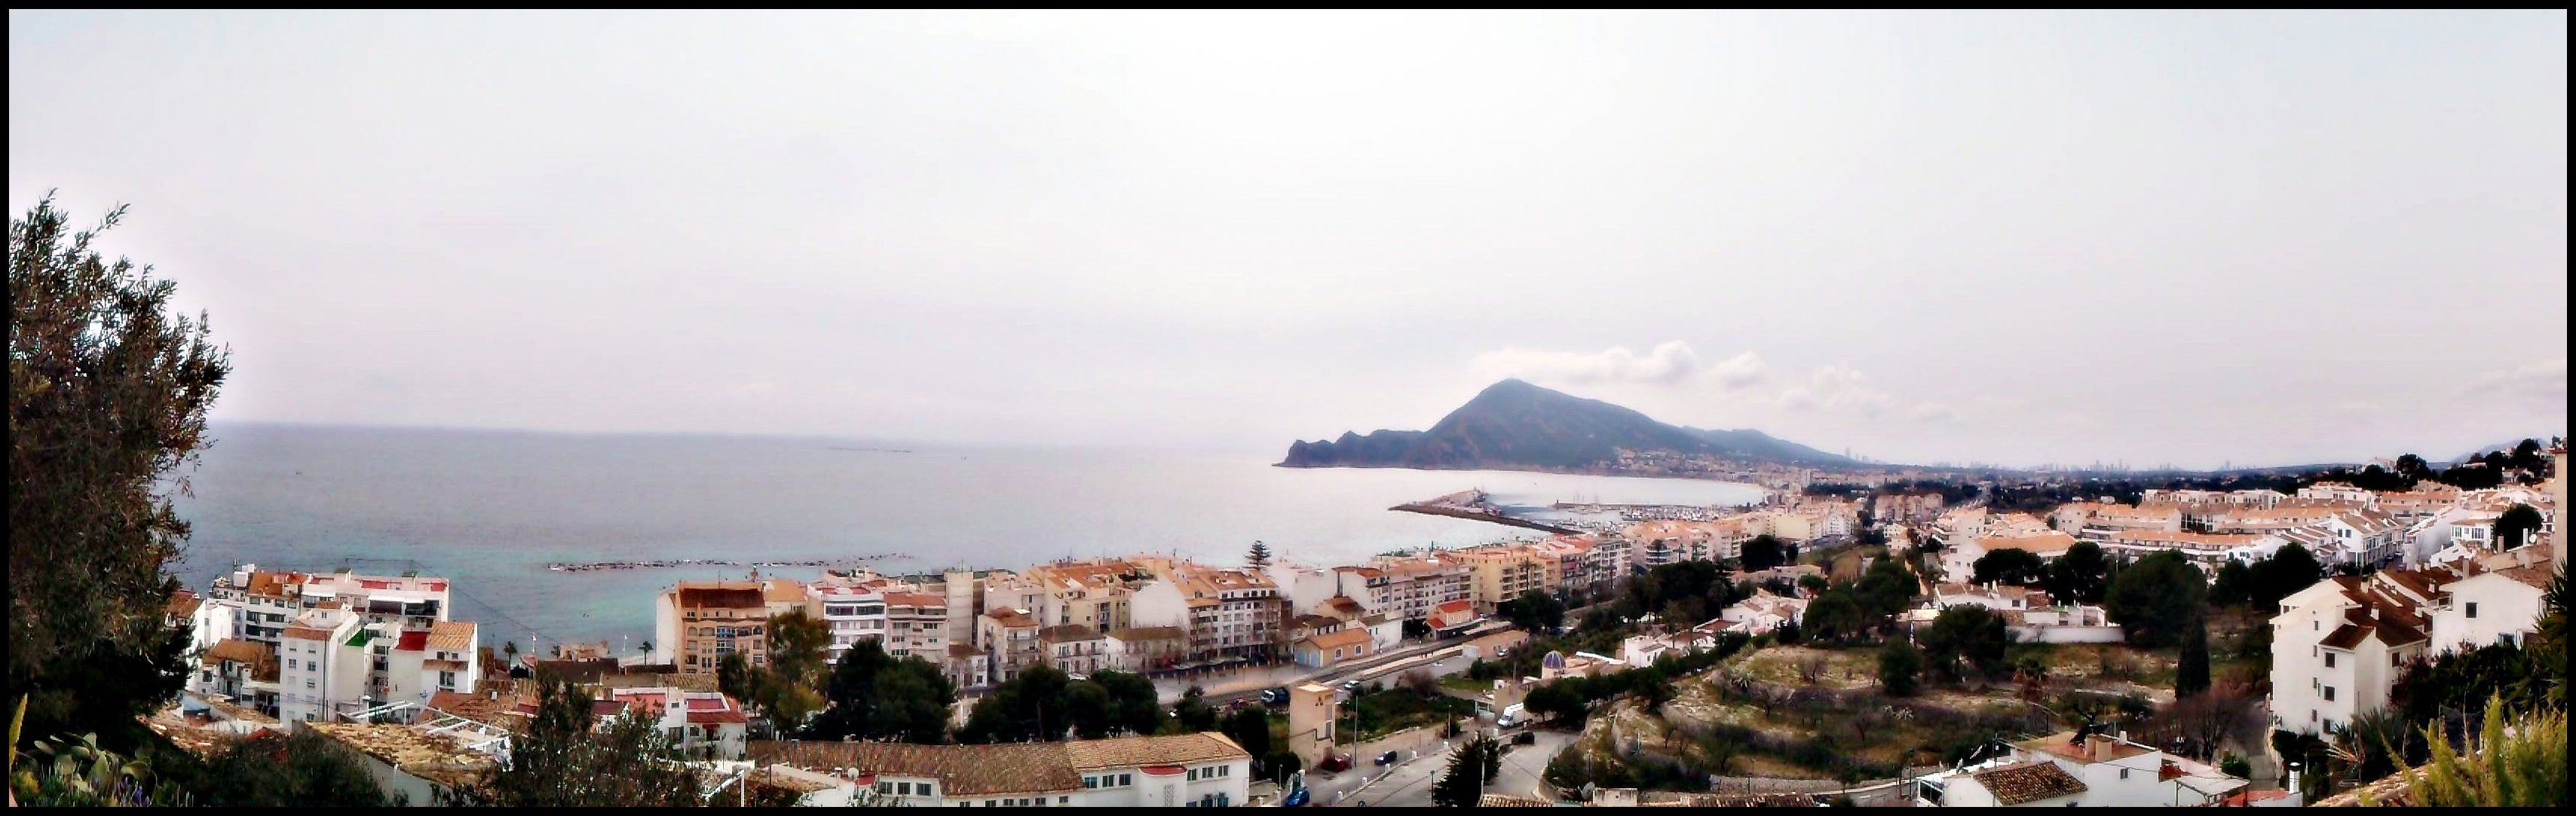 Skyline en Plaza de Altea